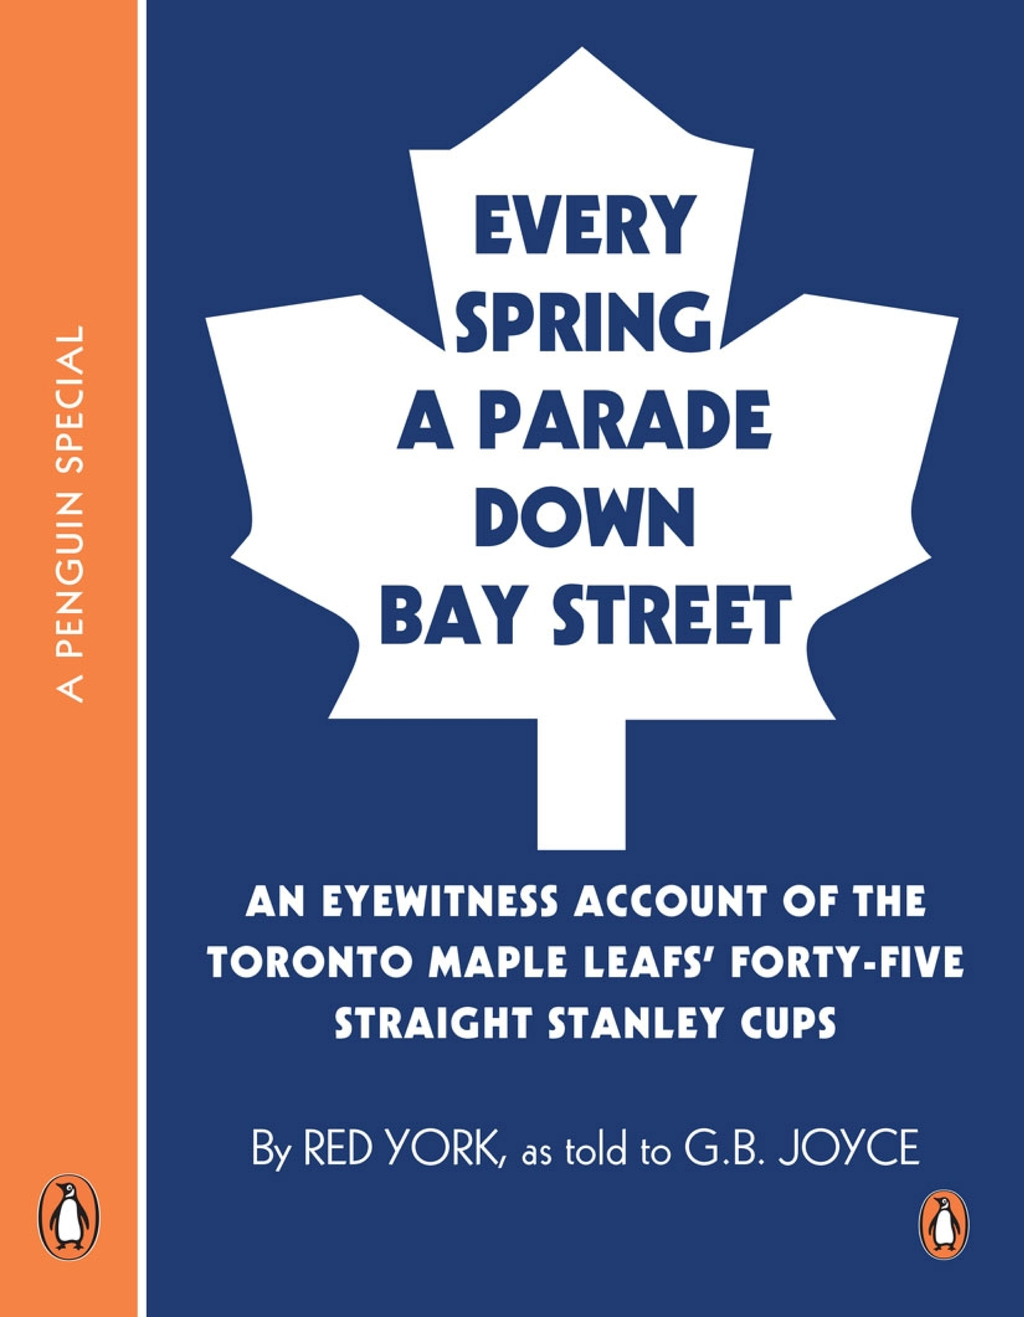 Every Spring a Parade Down Bay Street